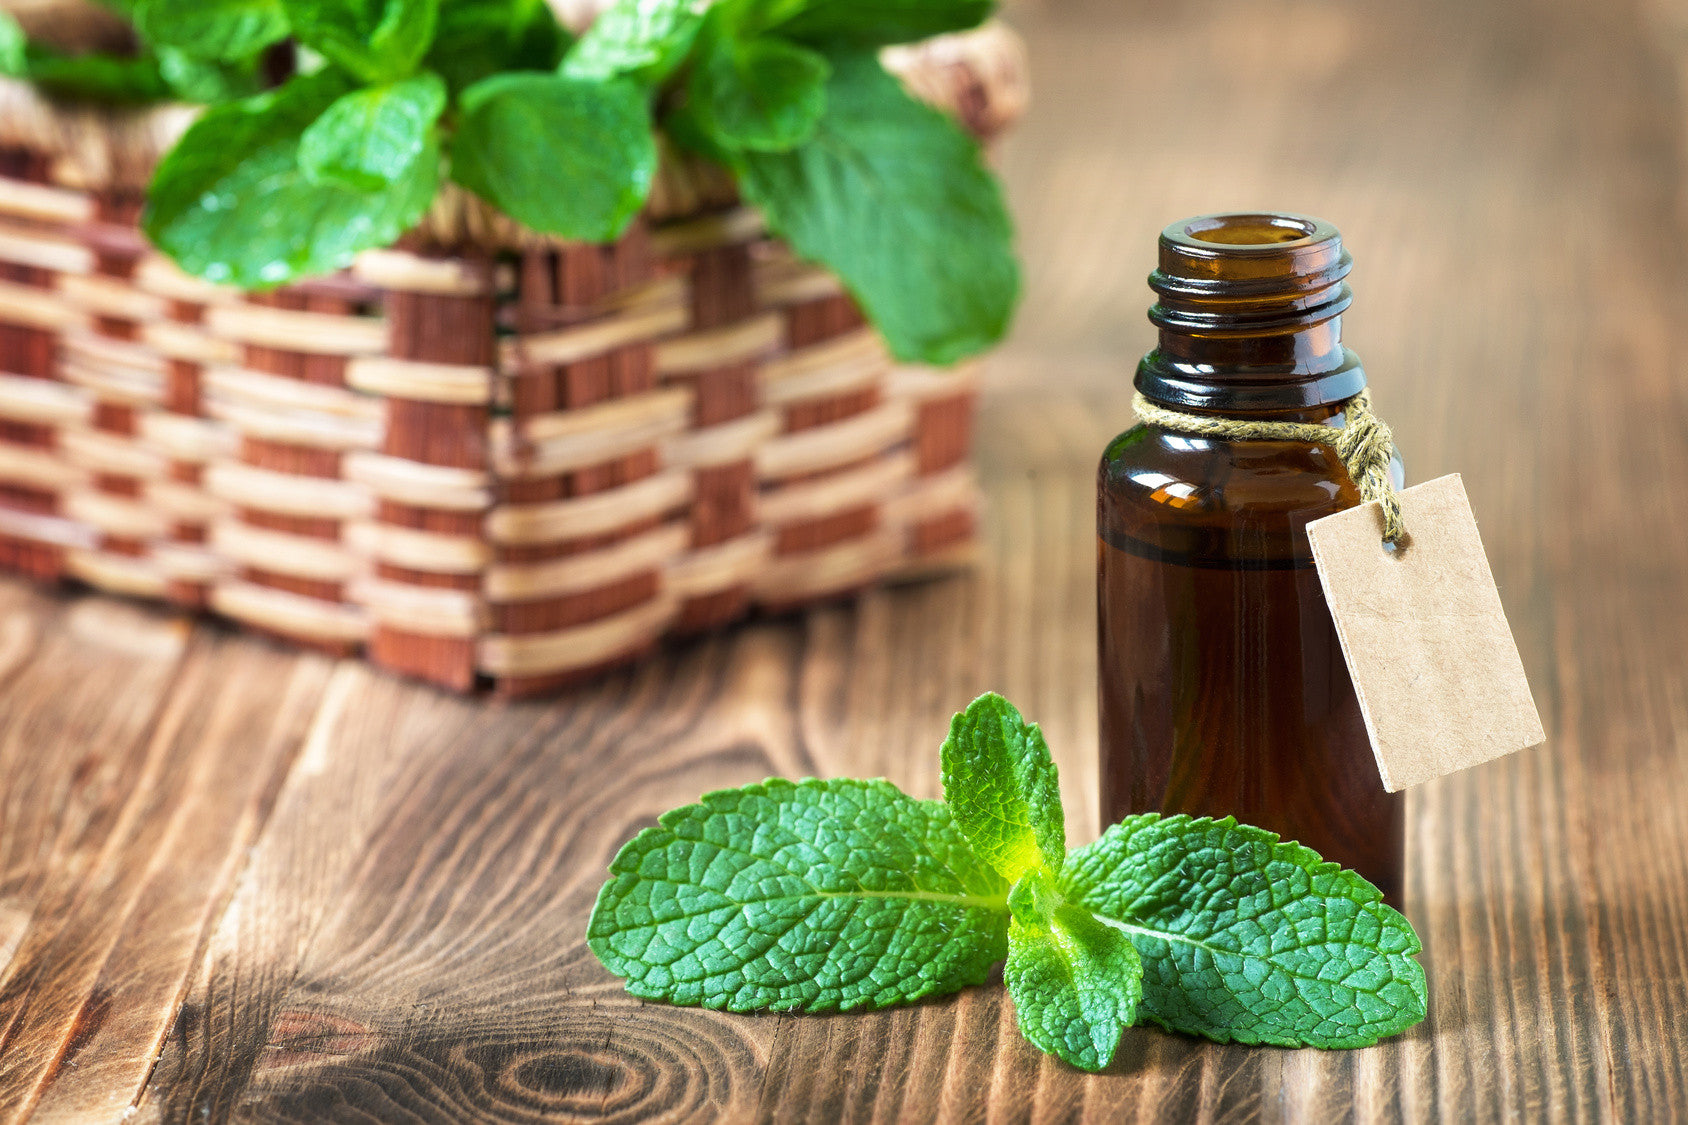 What are the medicinal properties of peppermint